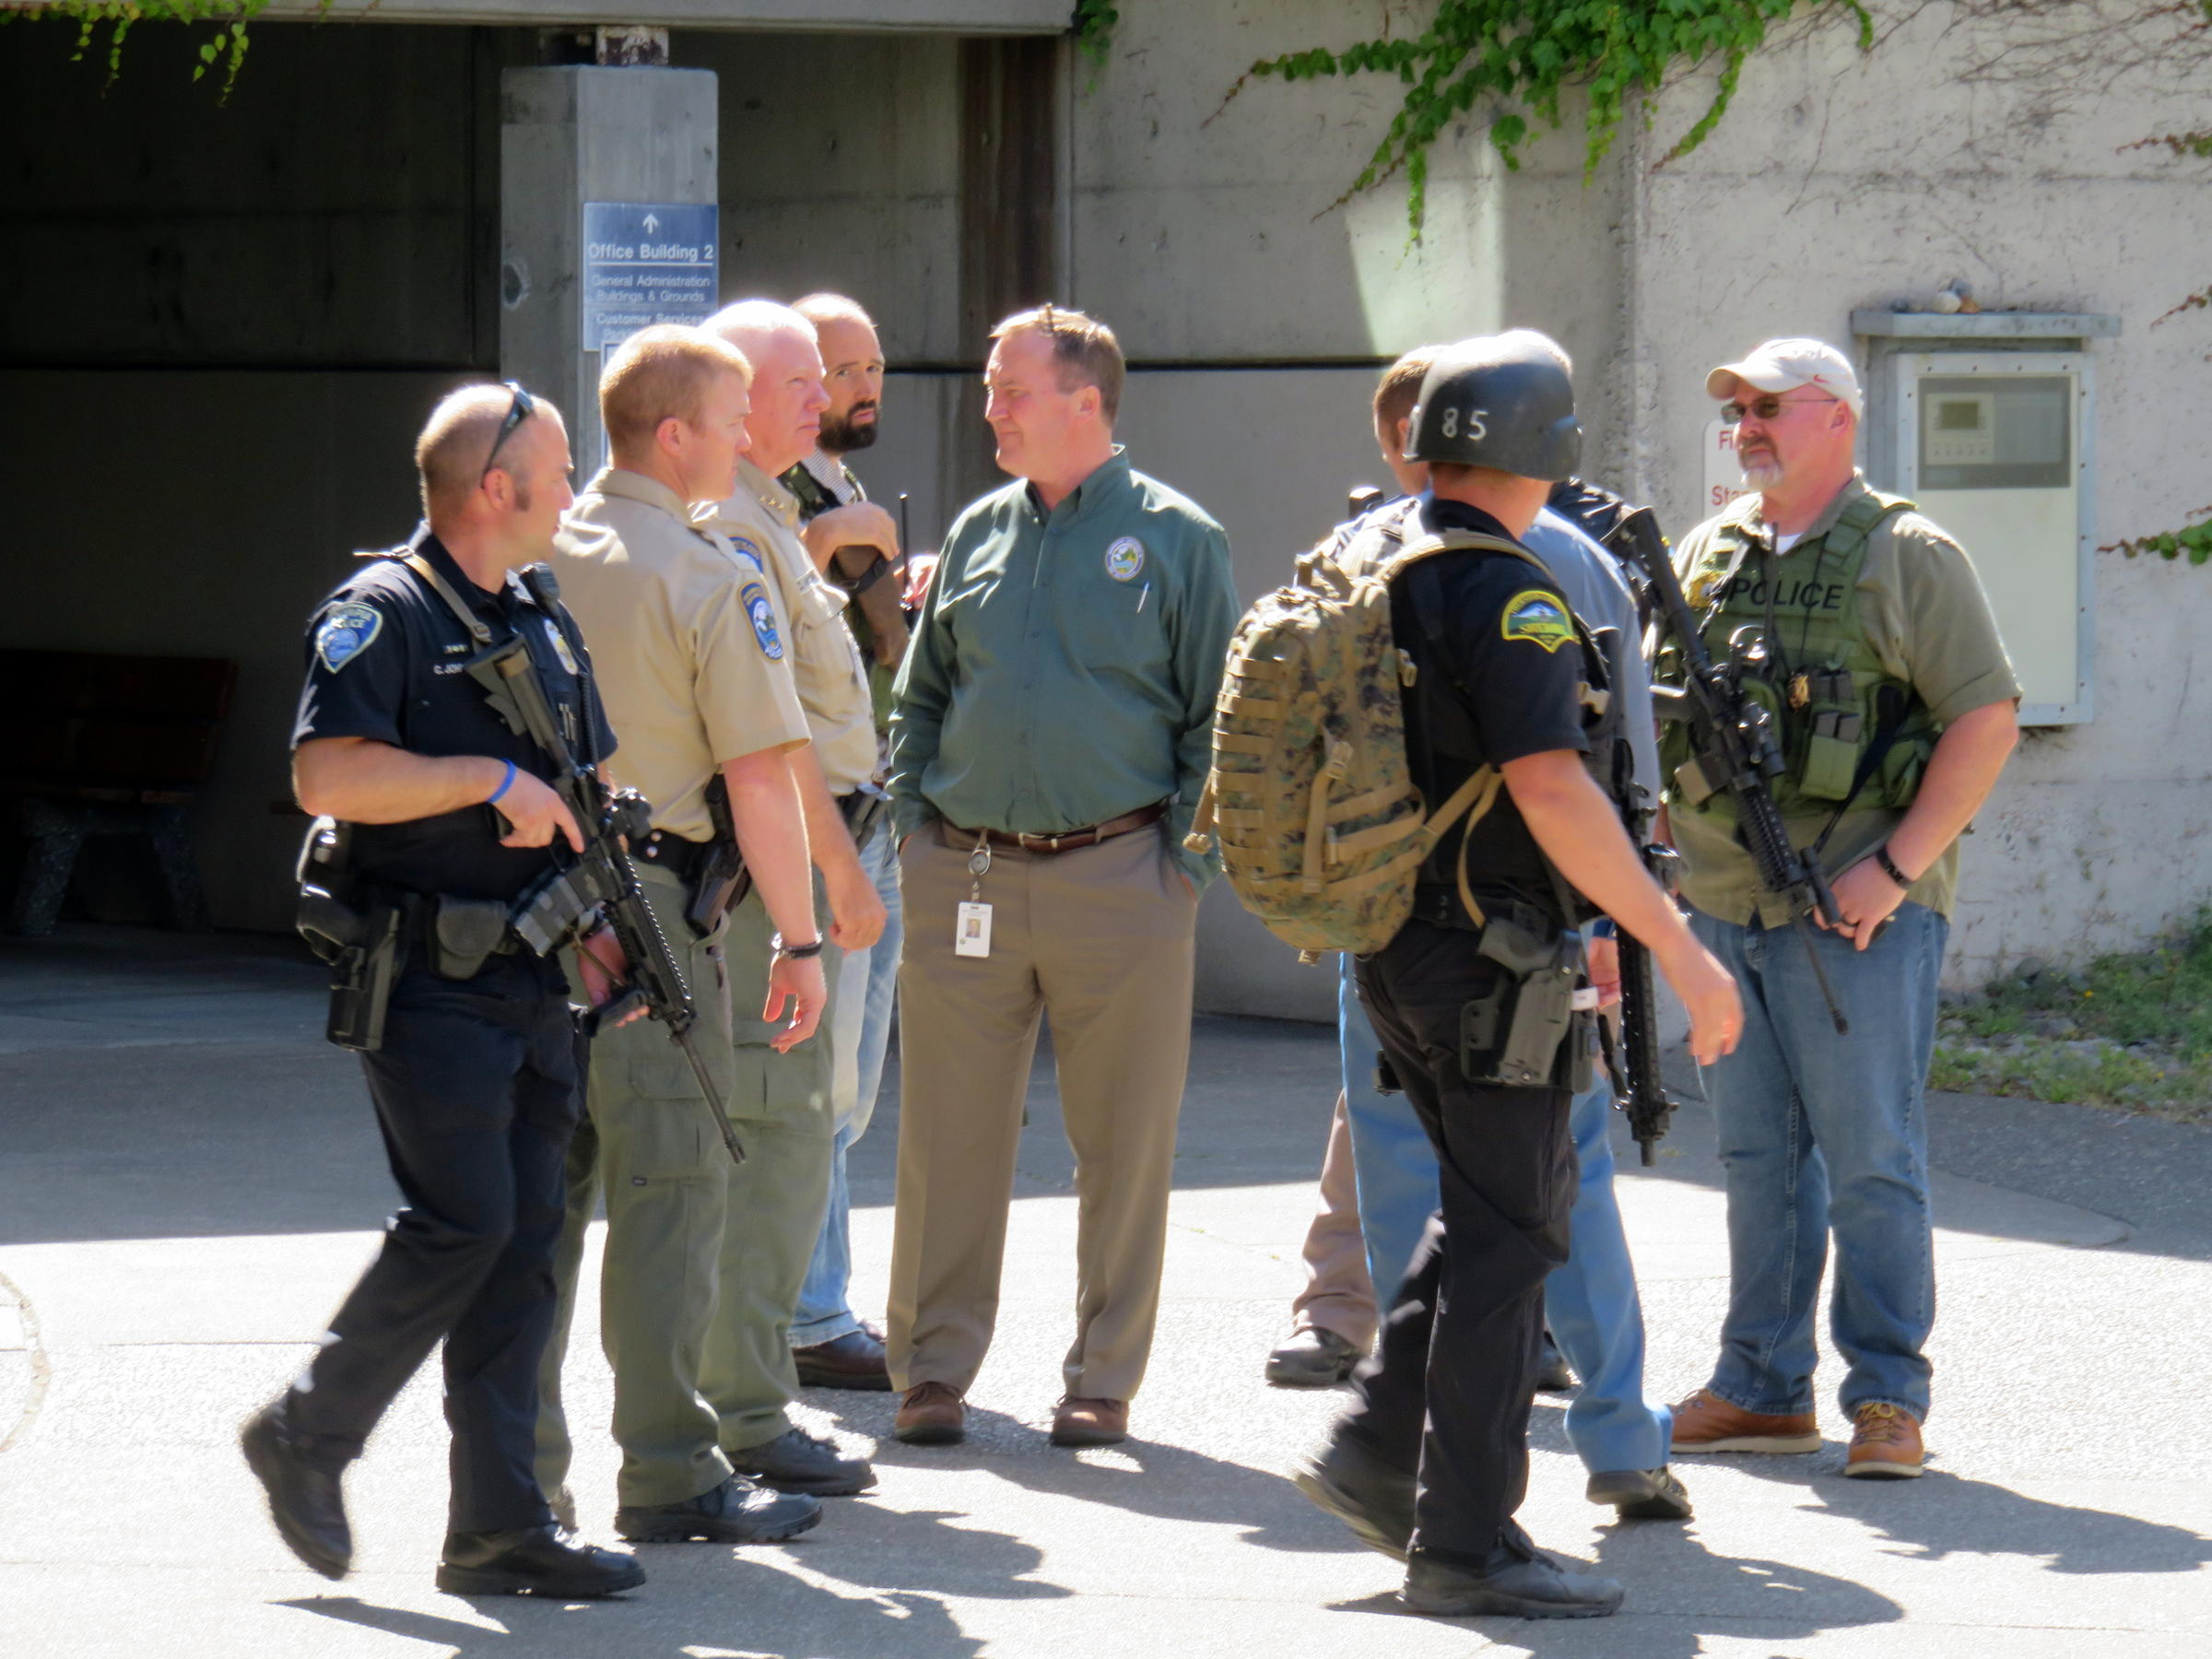 Lockdown on Washington state Capitol campus lifted after reported gunshot